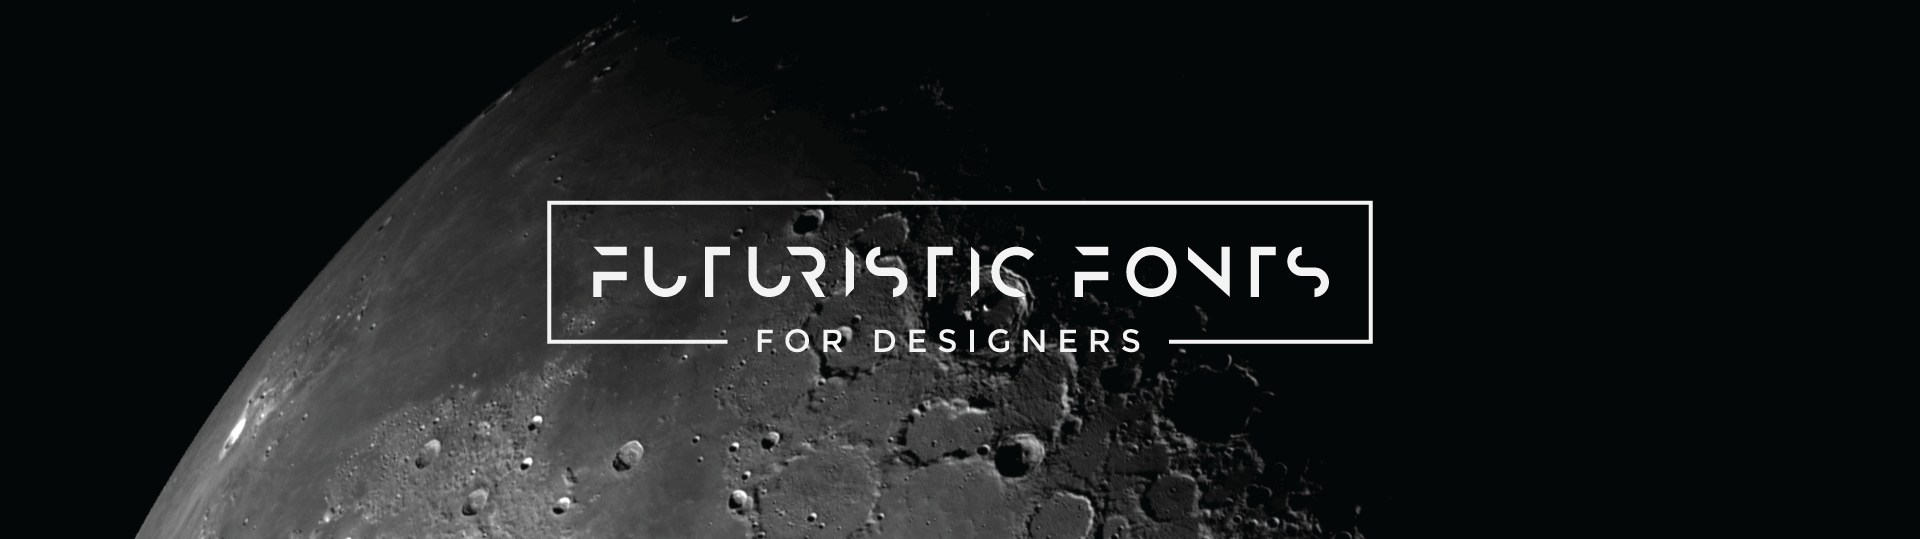 50 Free Futuristic Fonts To Help Make Your Designs Look